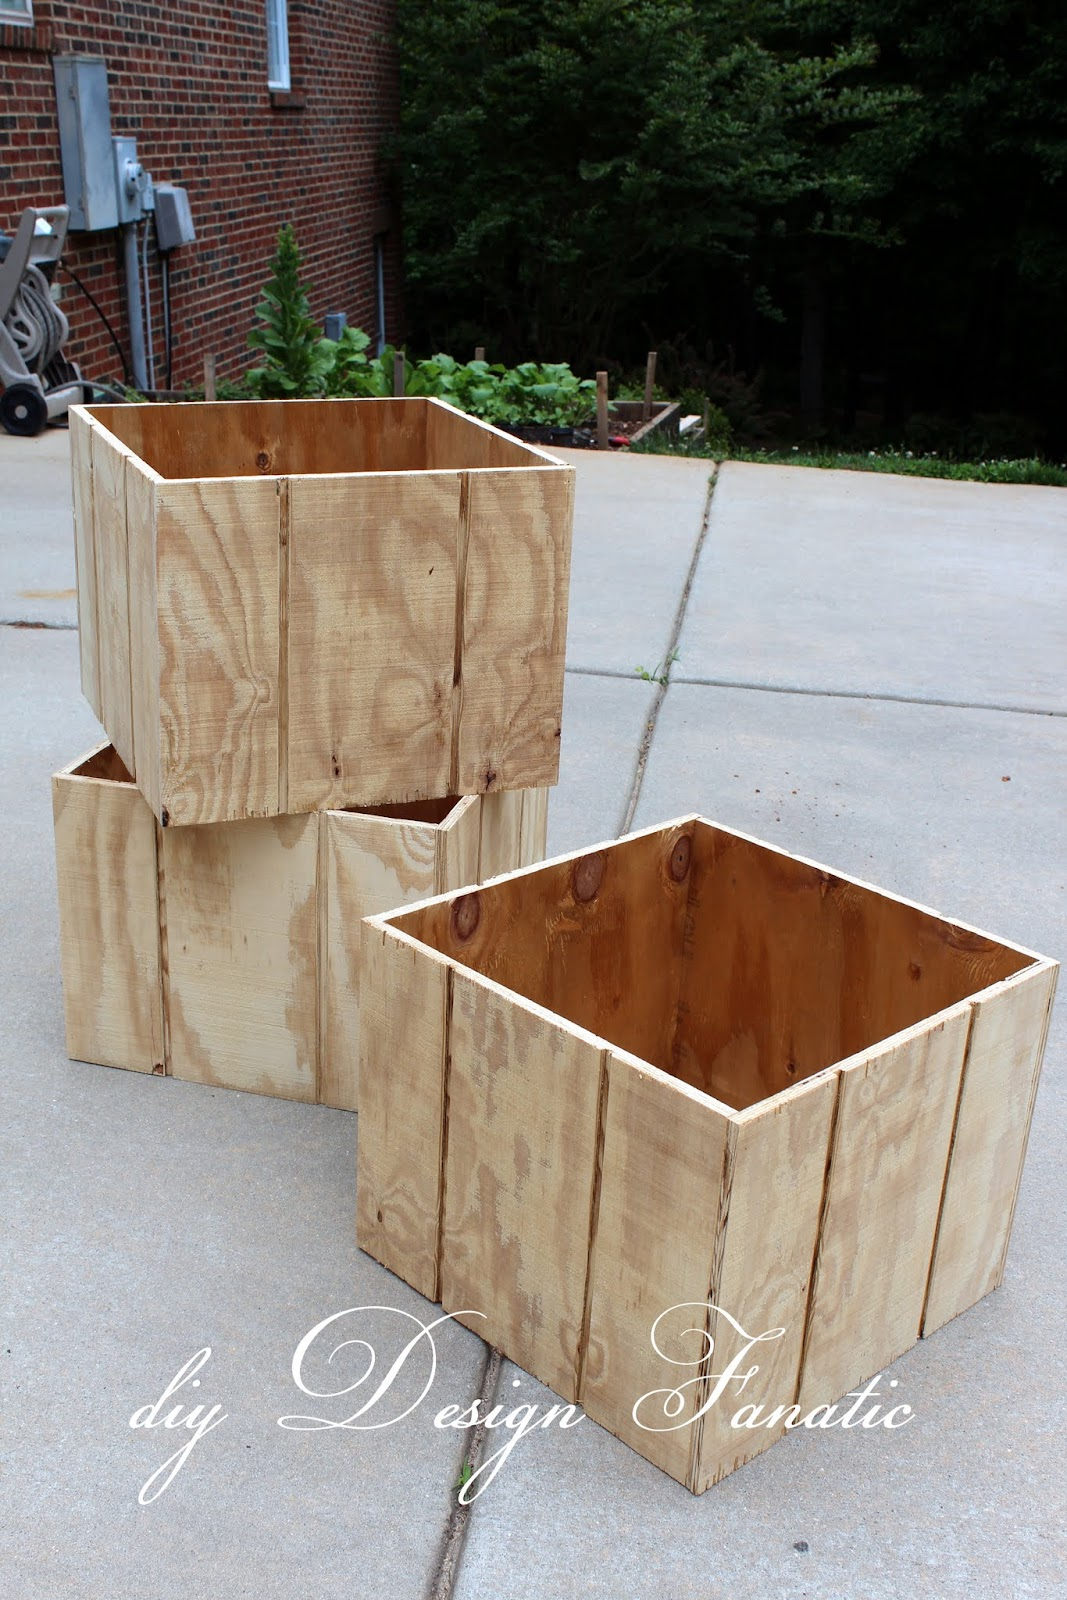 Download how to make wooden planter boxes pdf pergola for Wooden planters how to make